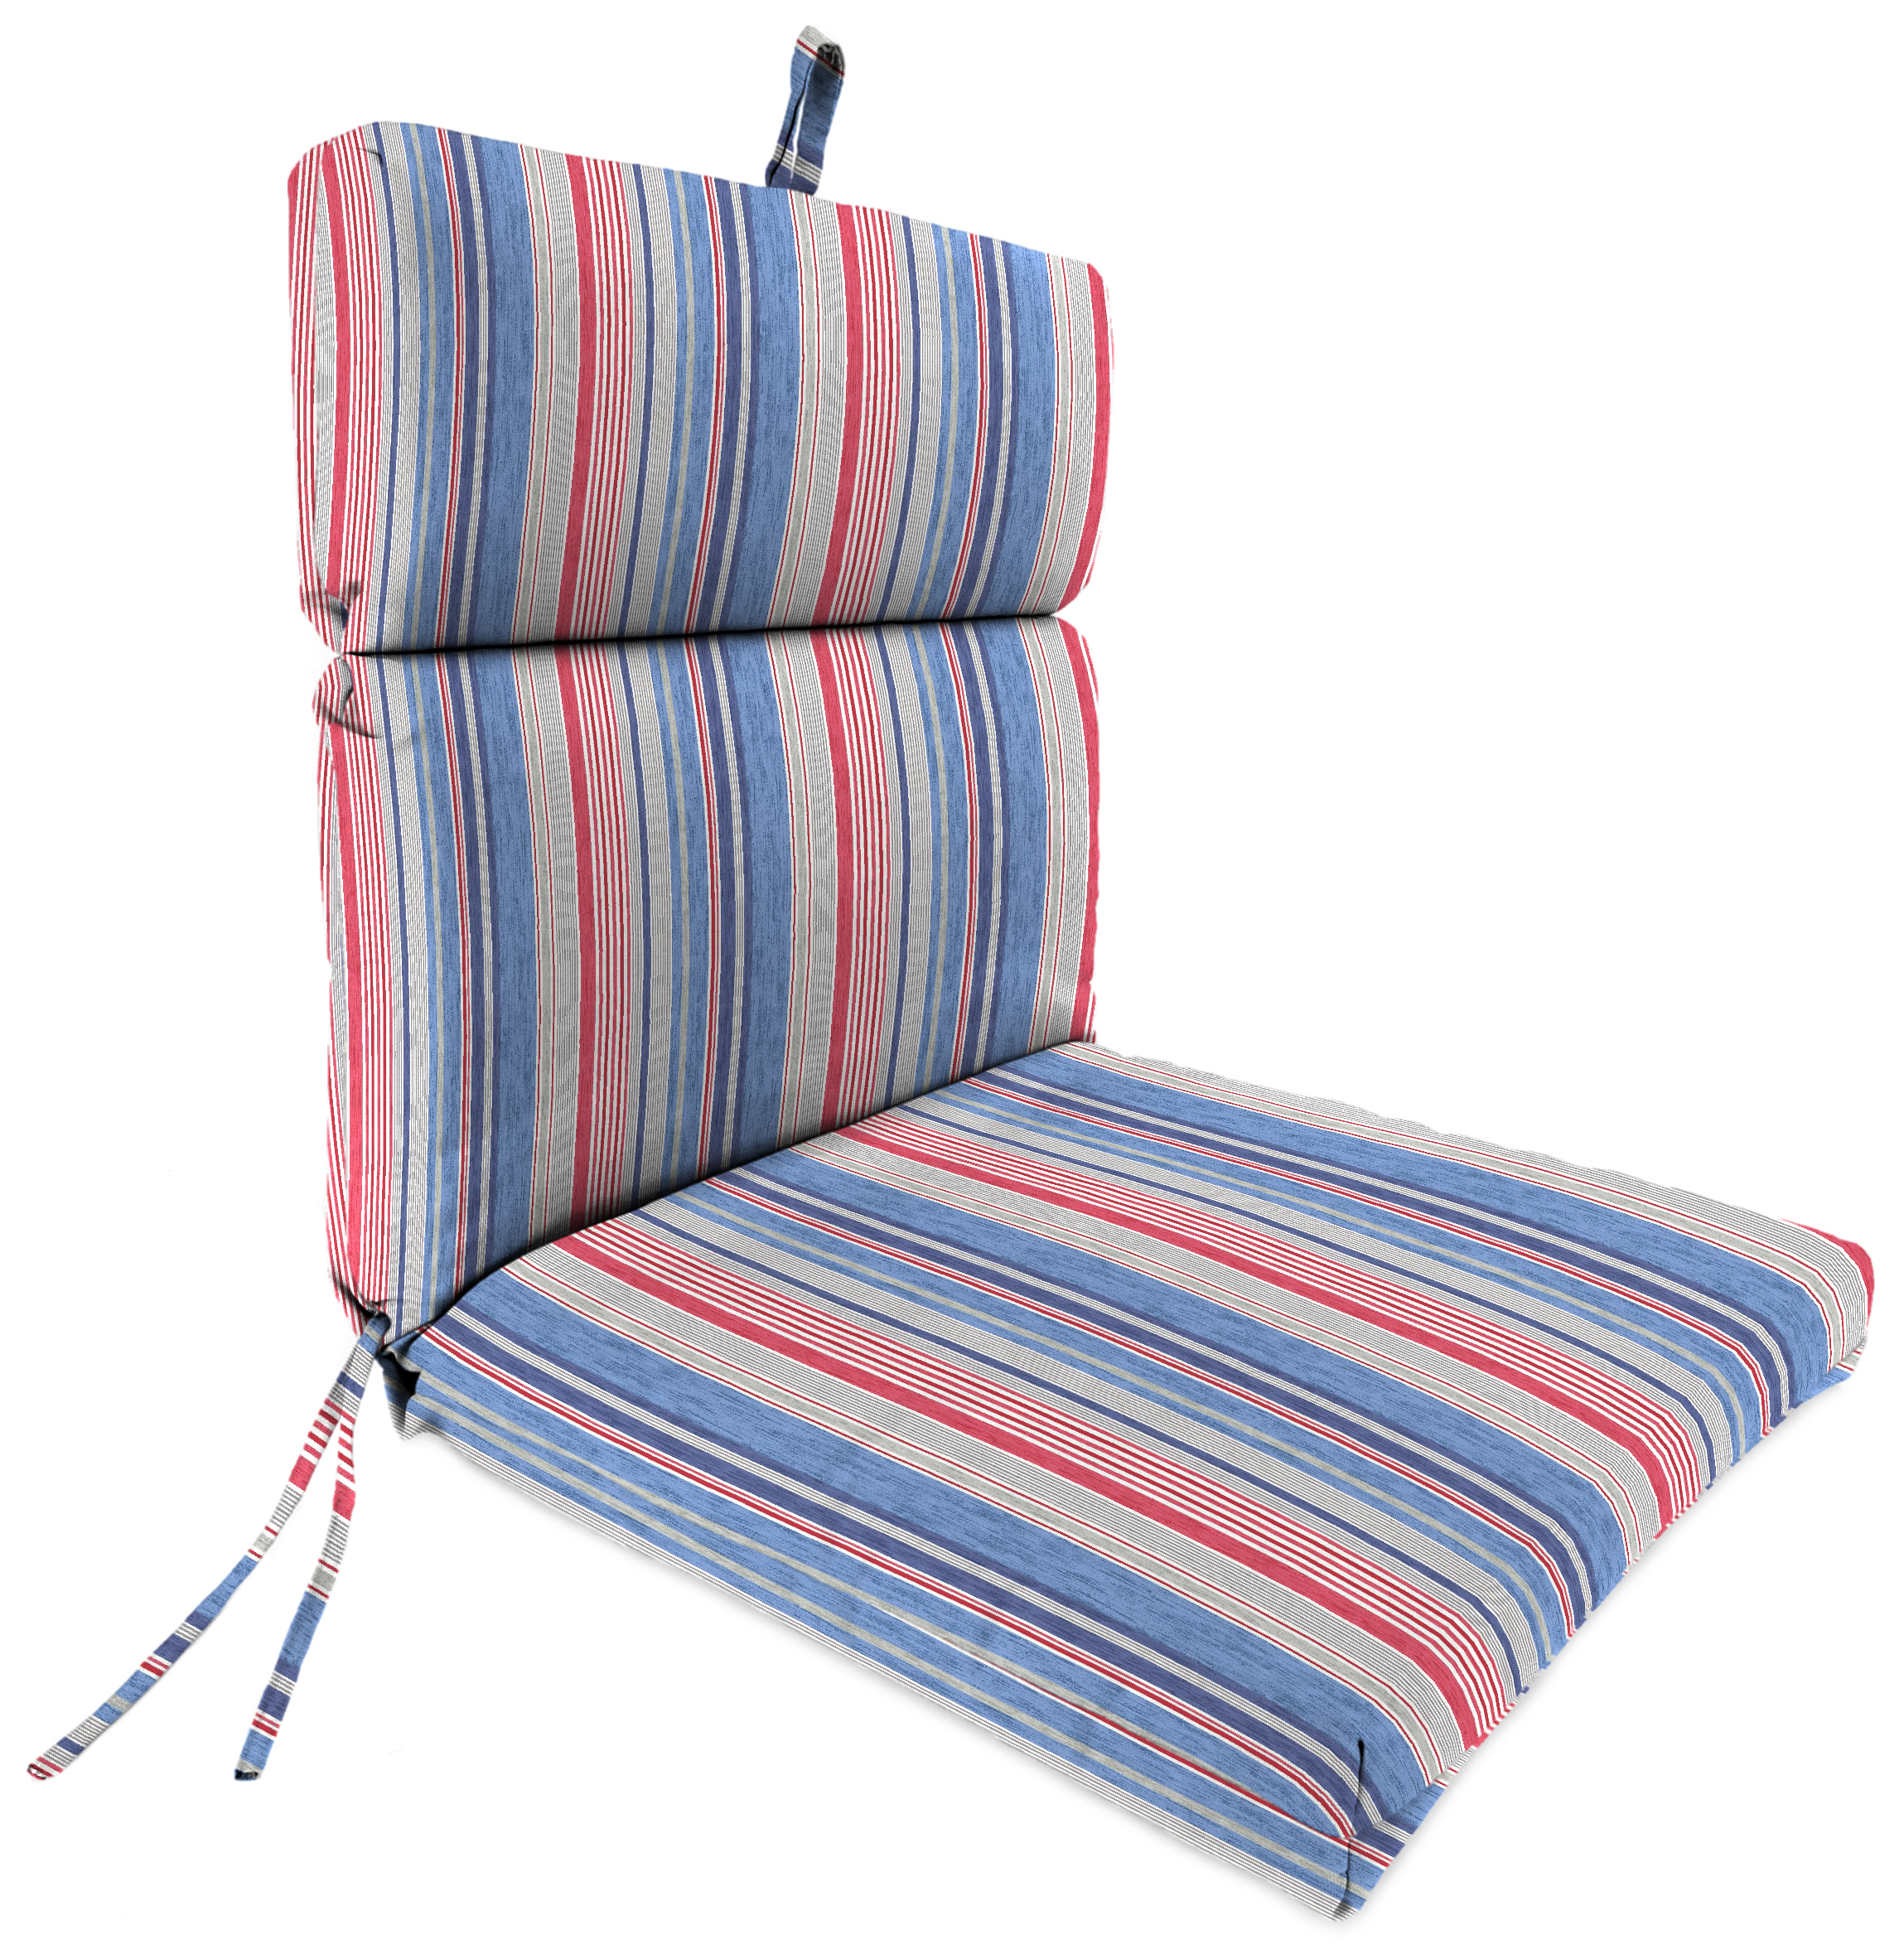 Jordan Manufacturing Co., Inc. French Edge Patio Chair Cushion in The Right Stripe Blue Marine